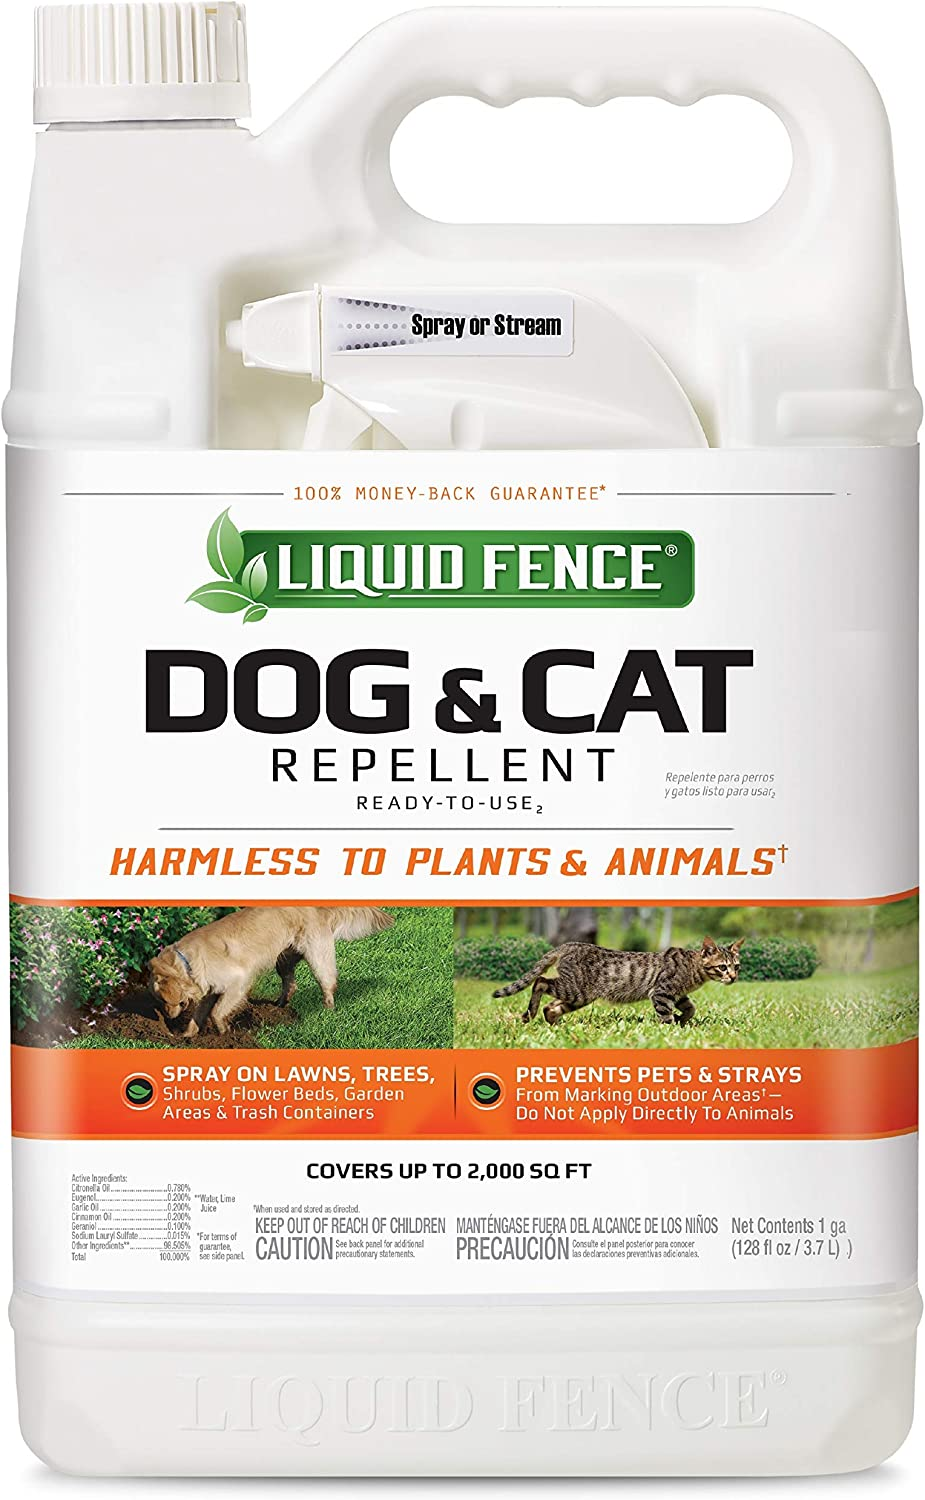 Liquid Fence Dog Cat Repellent 1-Gallon Ready-to-Use Discount is also Philadelphia Mall underway